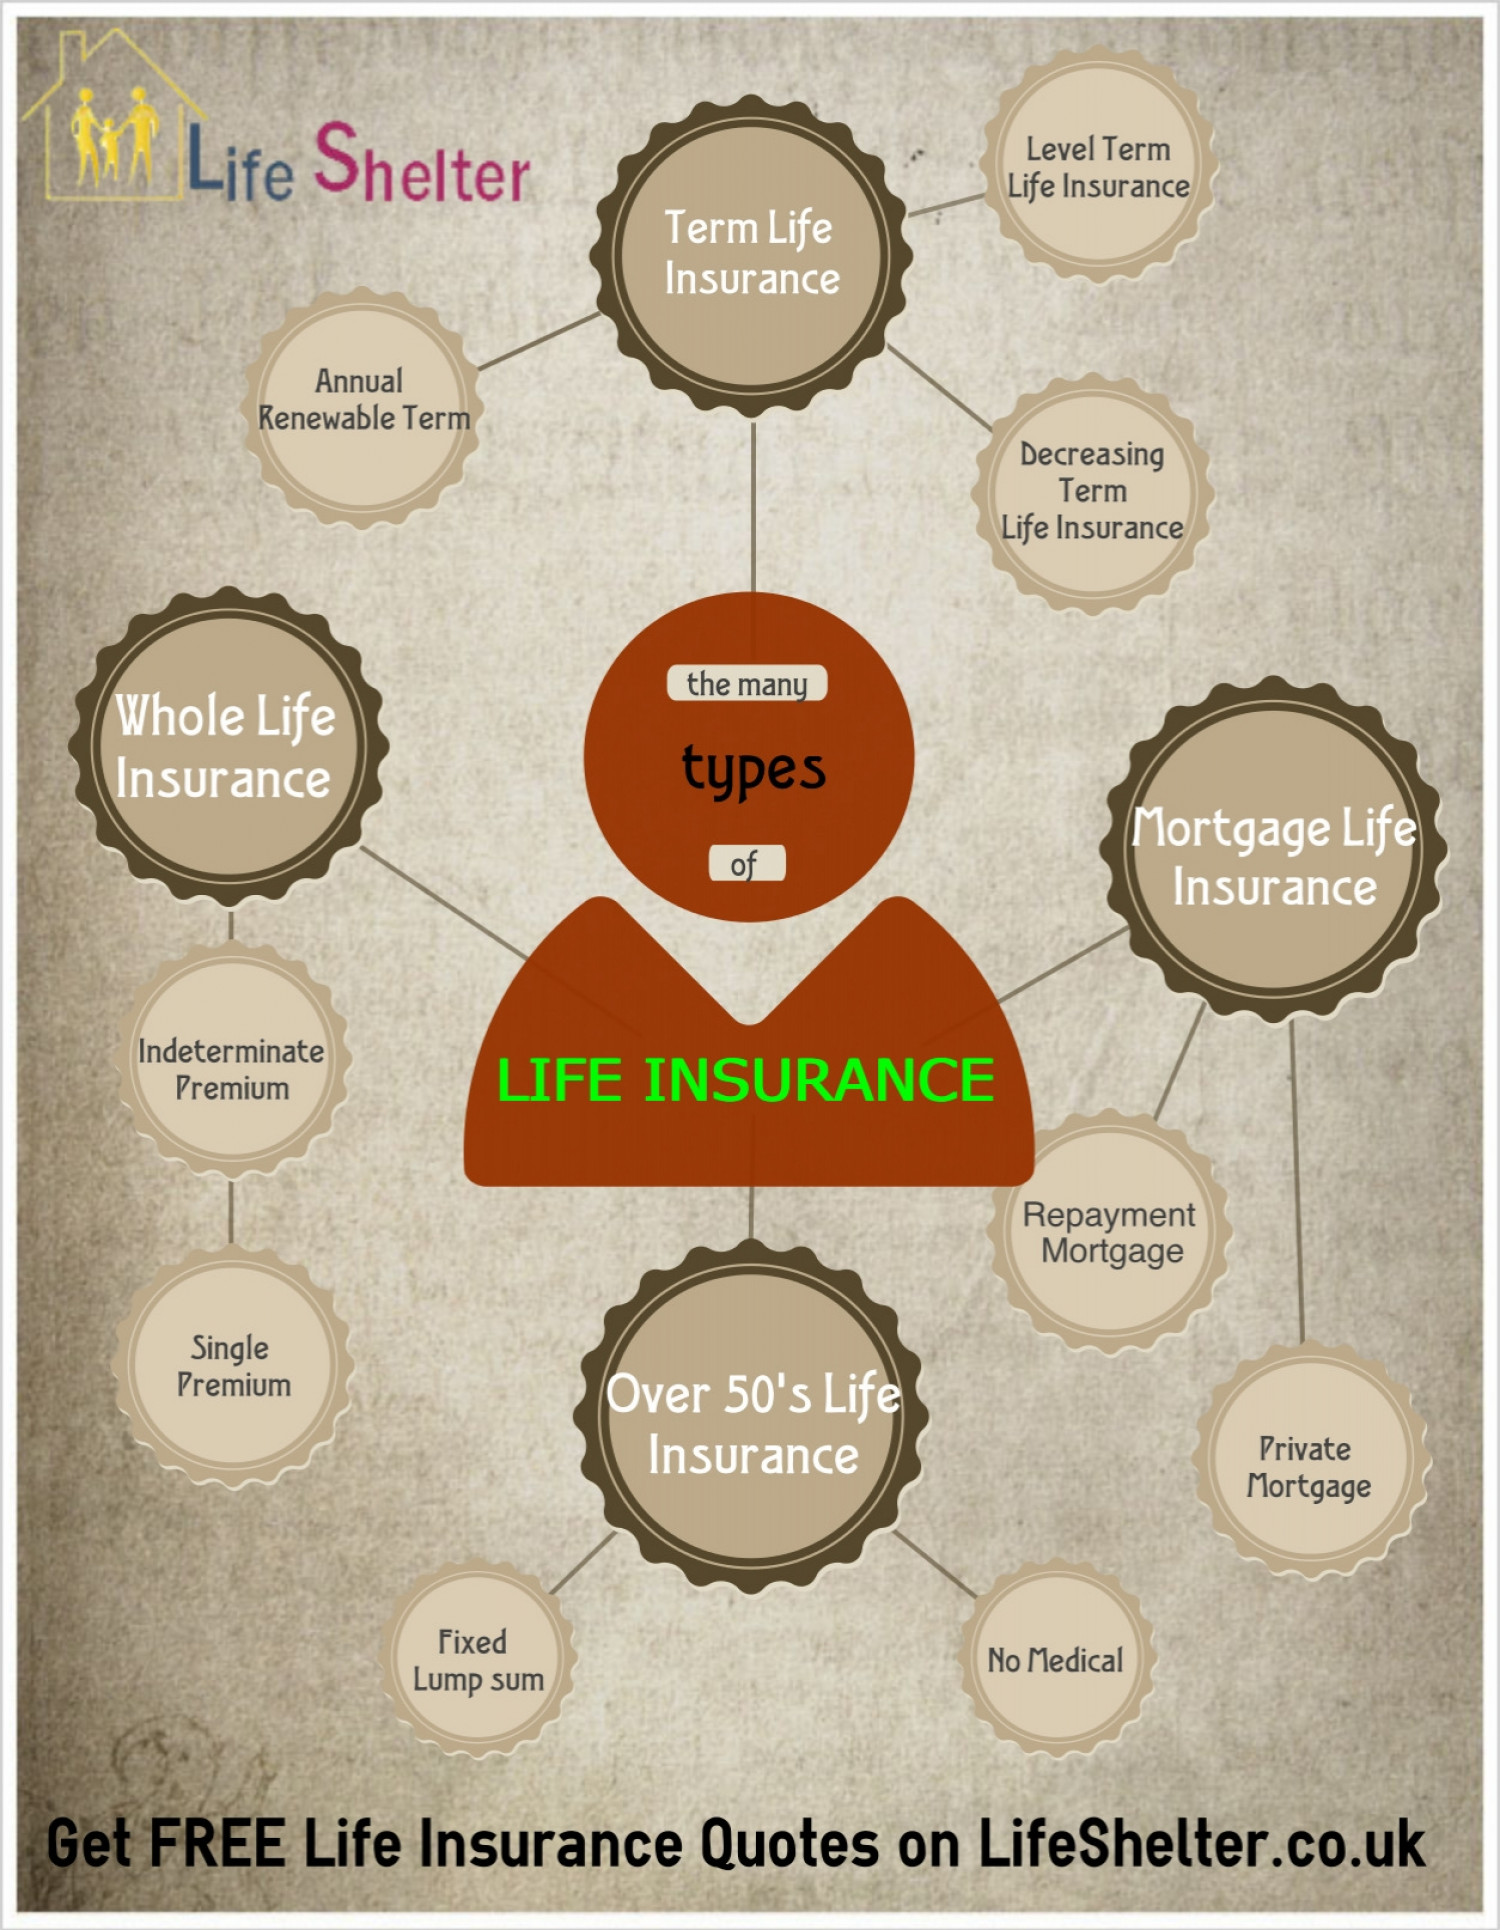 Life Insurance - Different Types Of Life Insurance Infographic